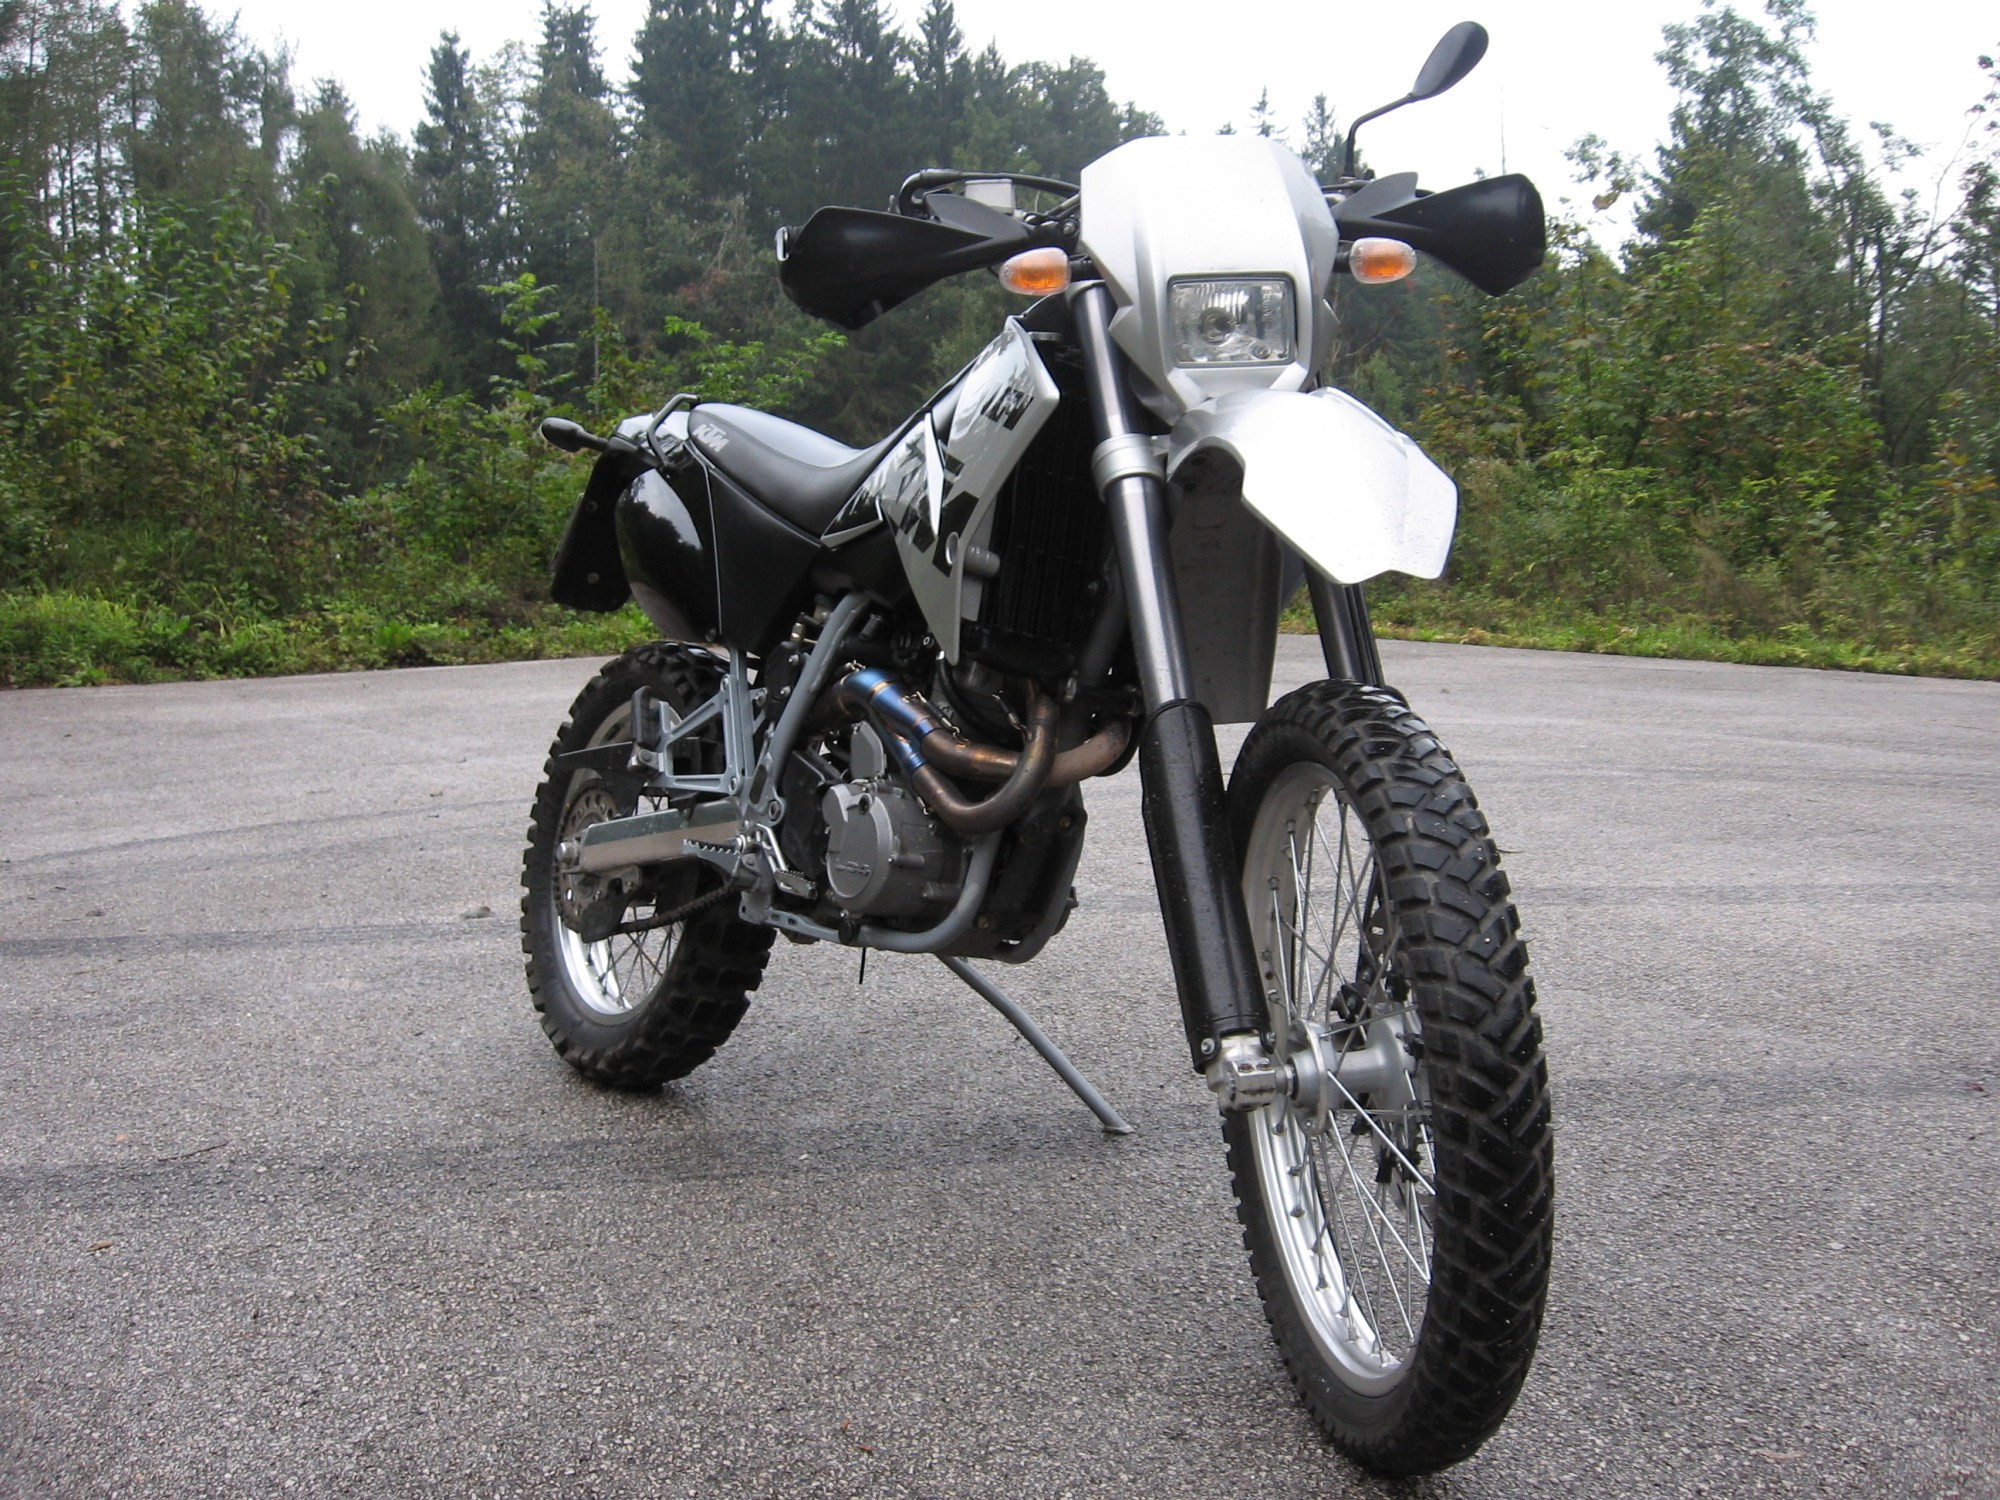 hight resolution of here are the stock fork guards on the bike when i got it